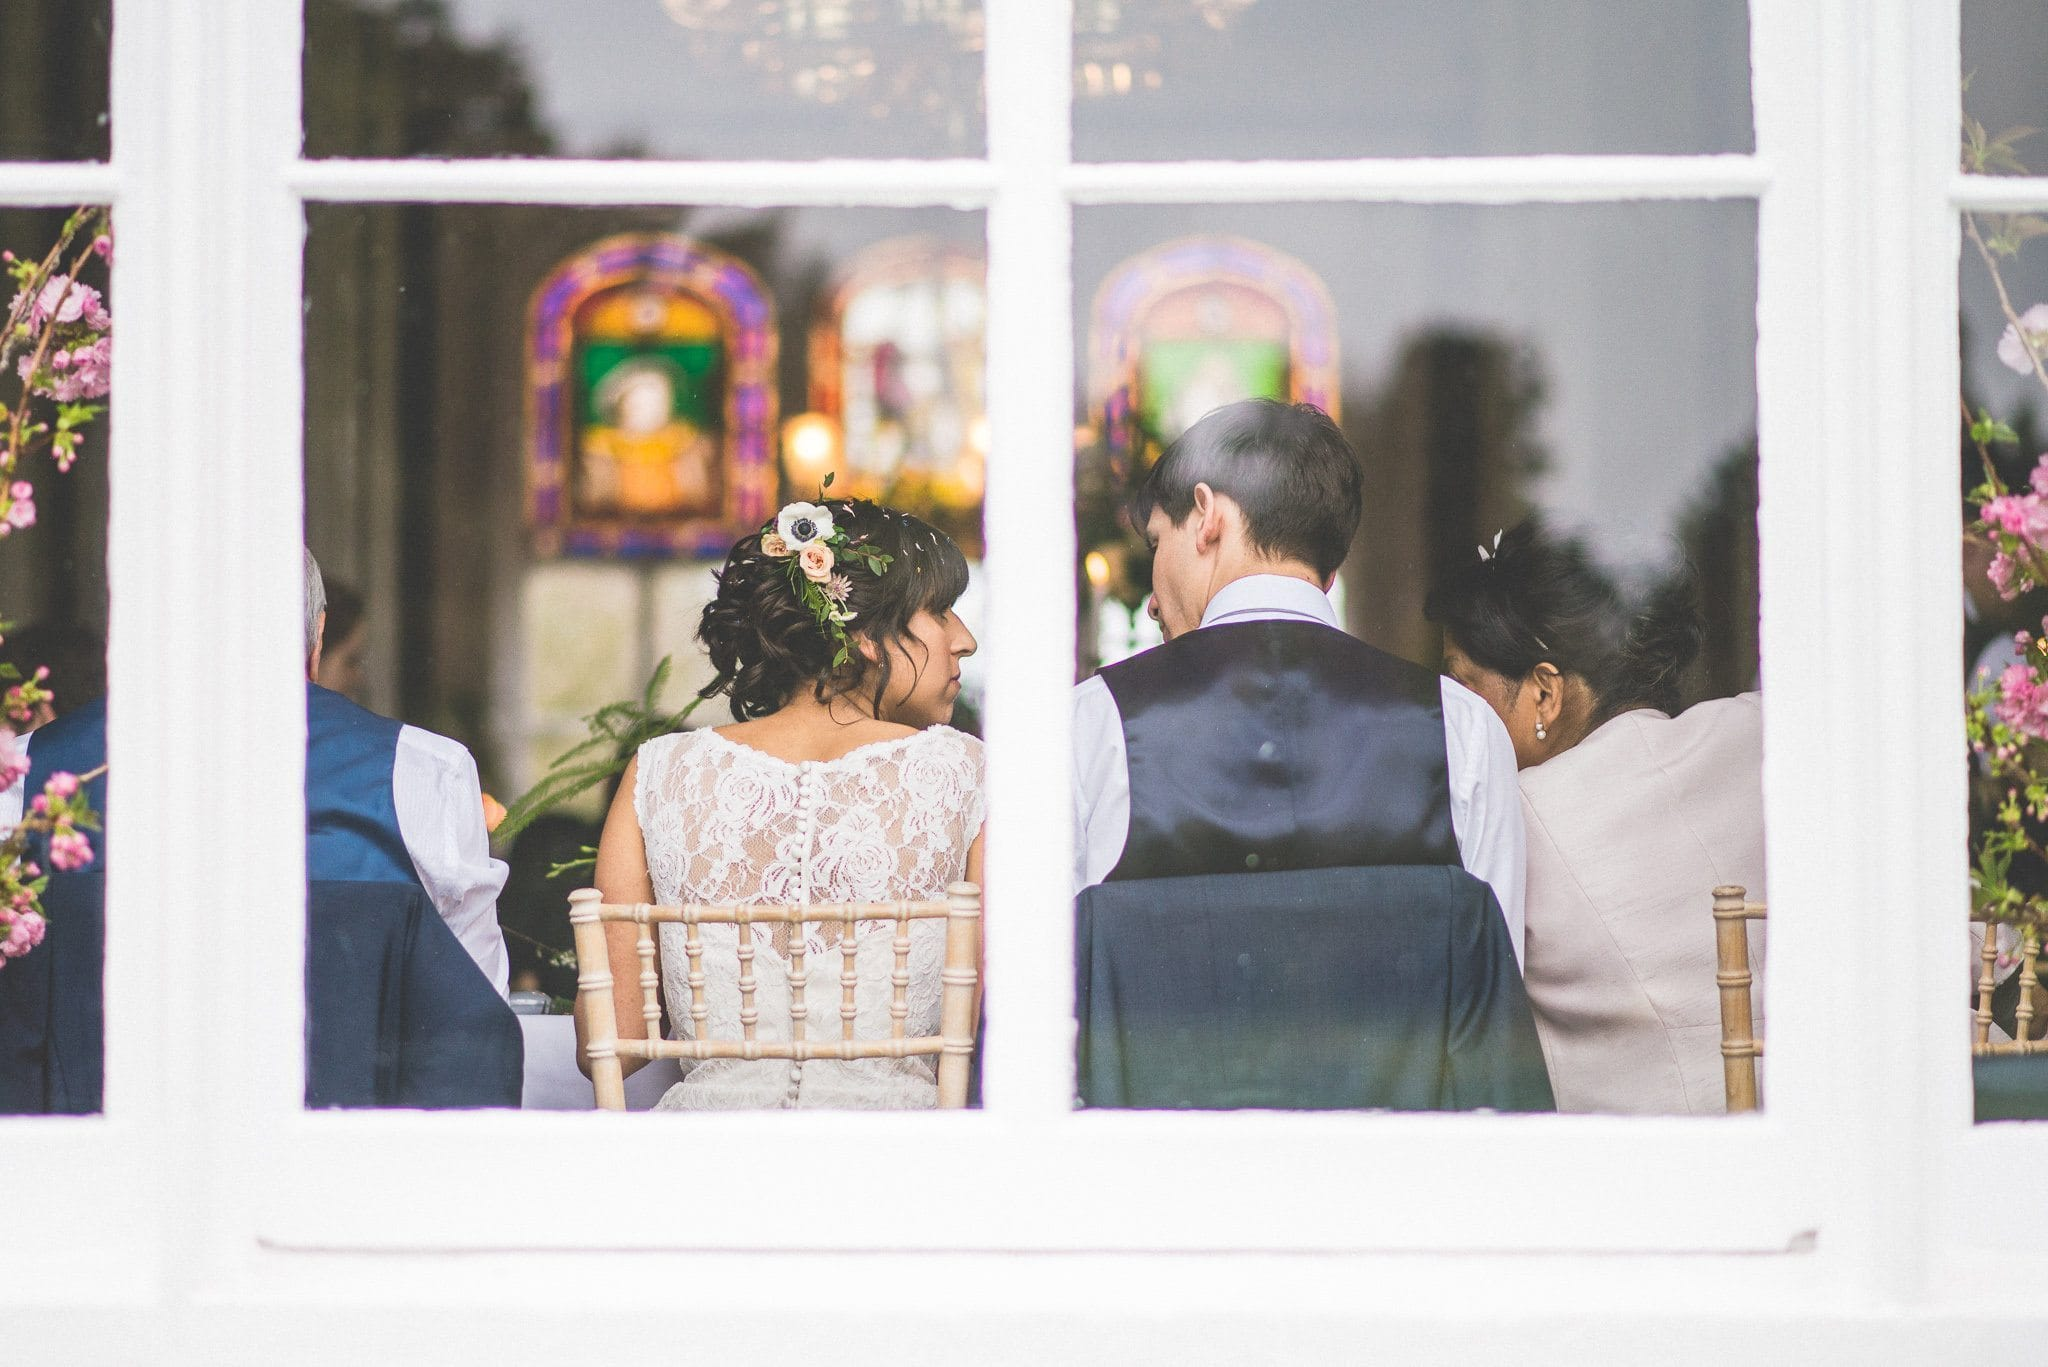 A shot looking in from outside the window, behind Jasmin and Andy seated at the top table